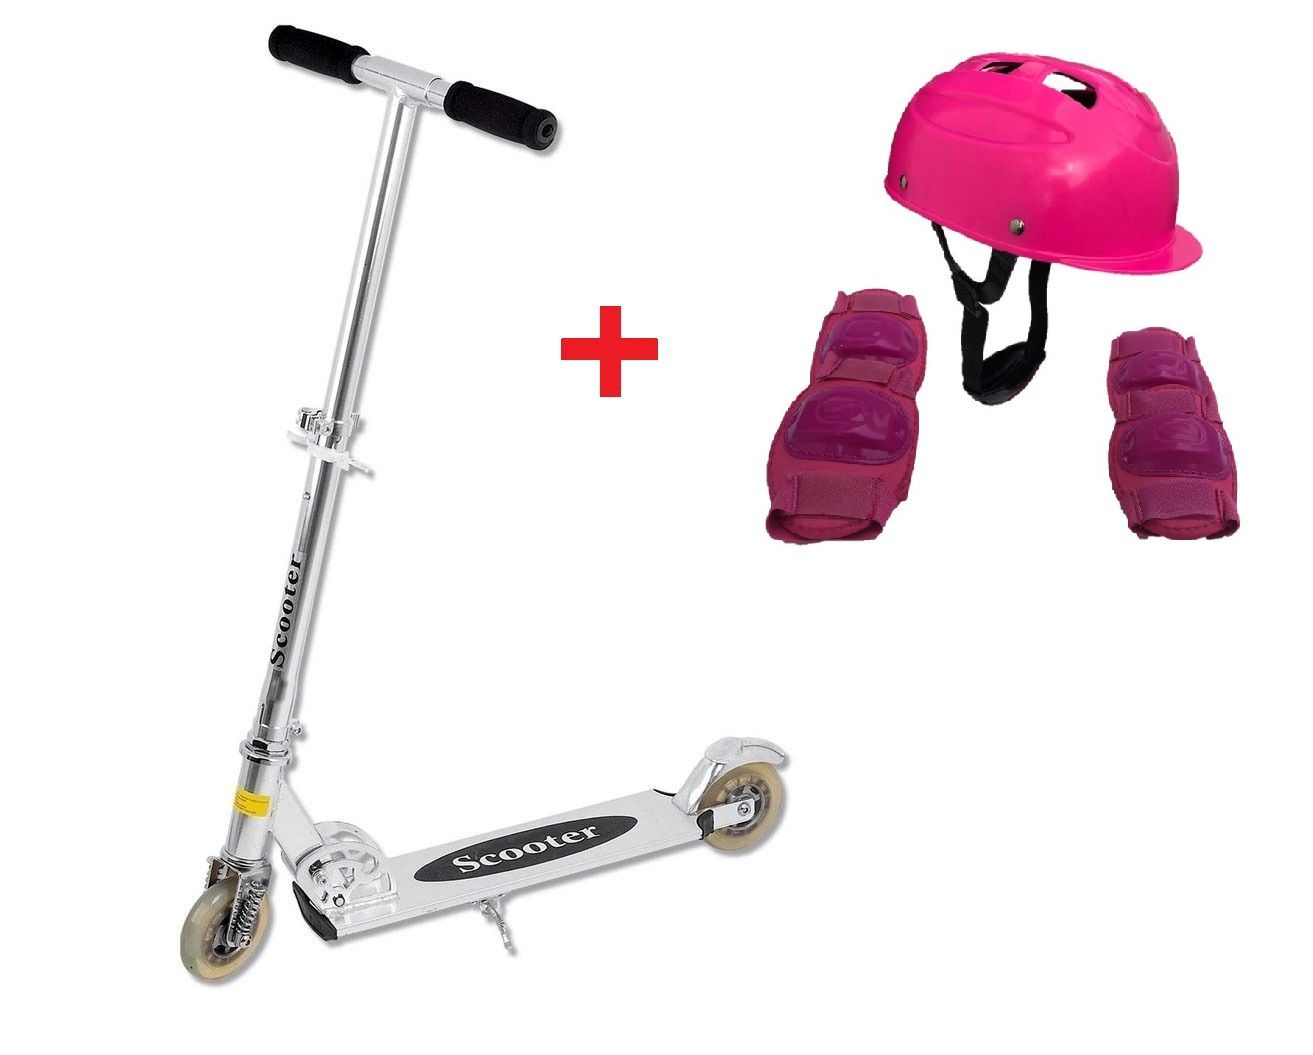 Patinete Turbo Racing + Kit Segurança Infantil PRETO - PT-566 + CP02 ROSA